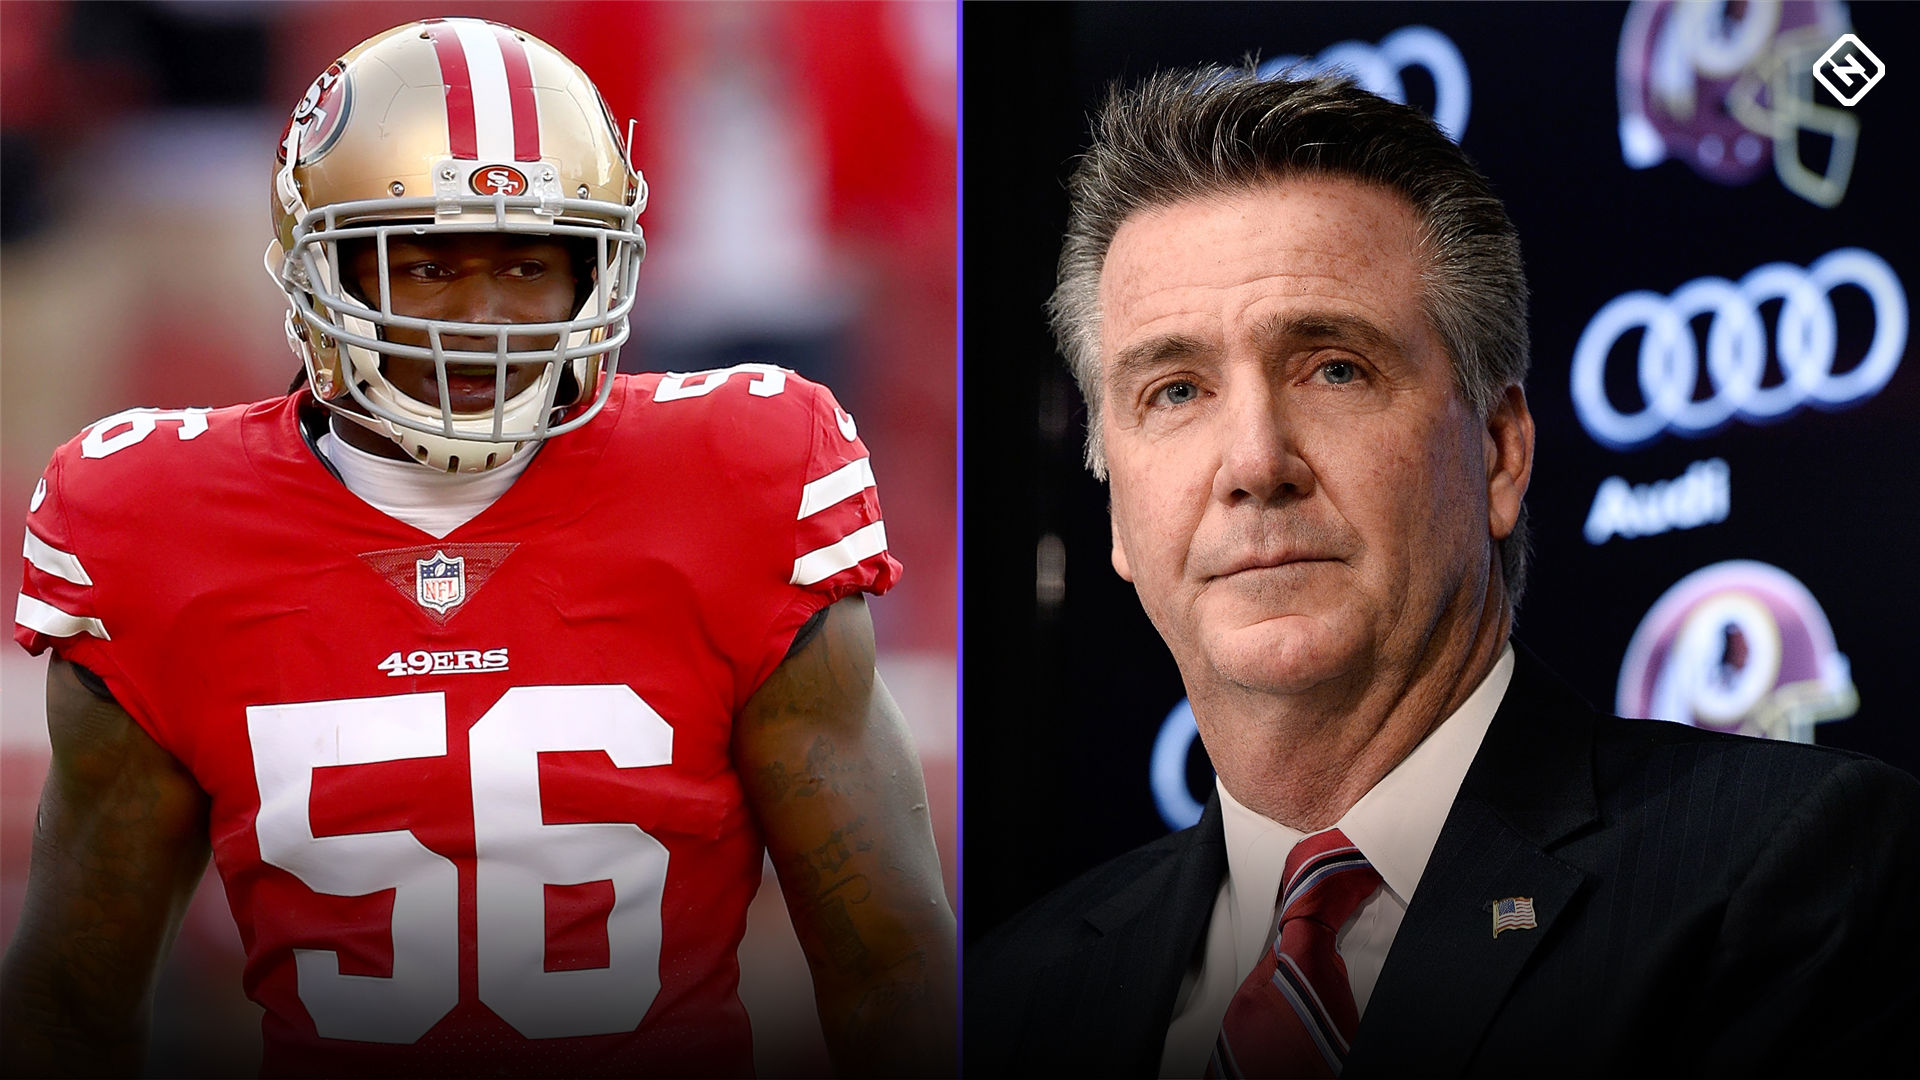 3a754698d6a Reuben Foster mess restores Redskins as gold standard for unaccountability  | Sporting News